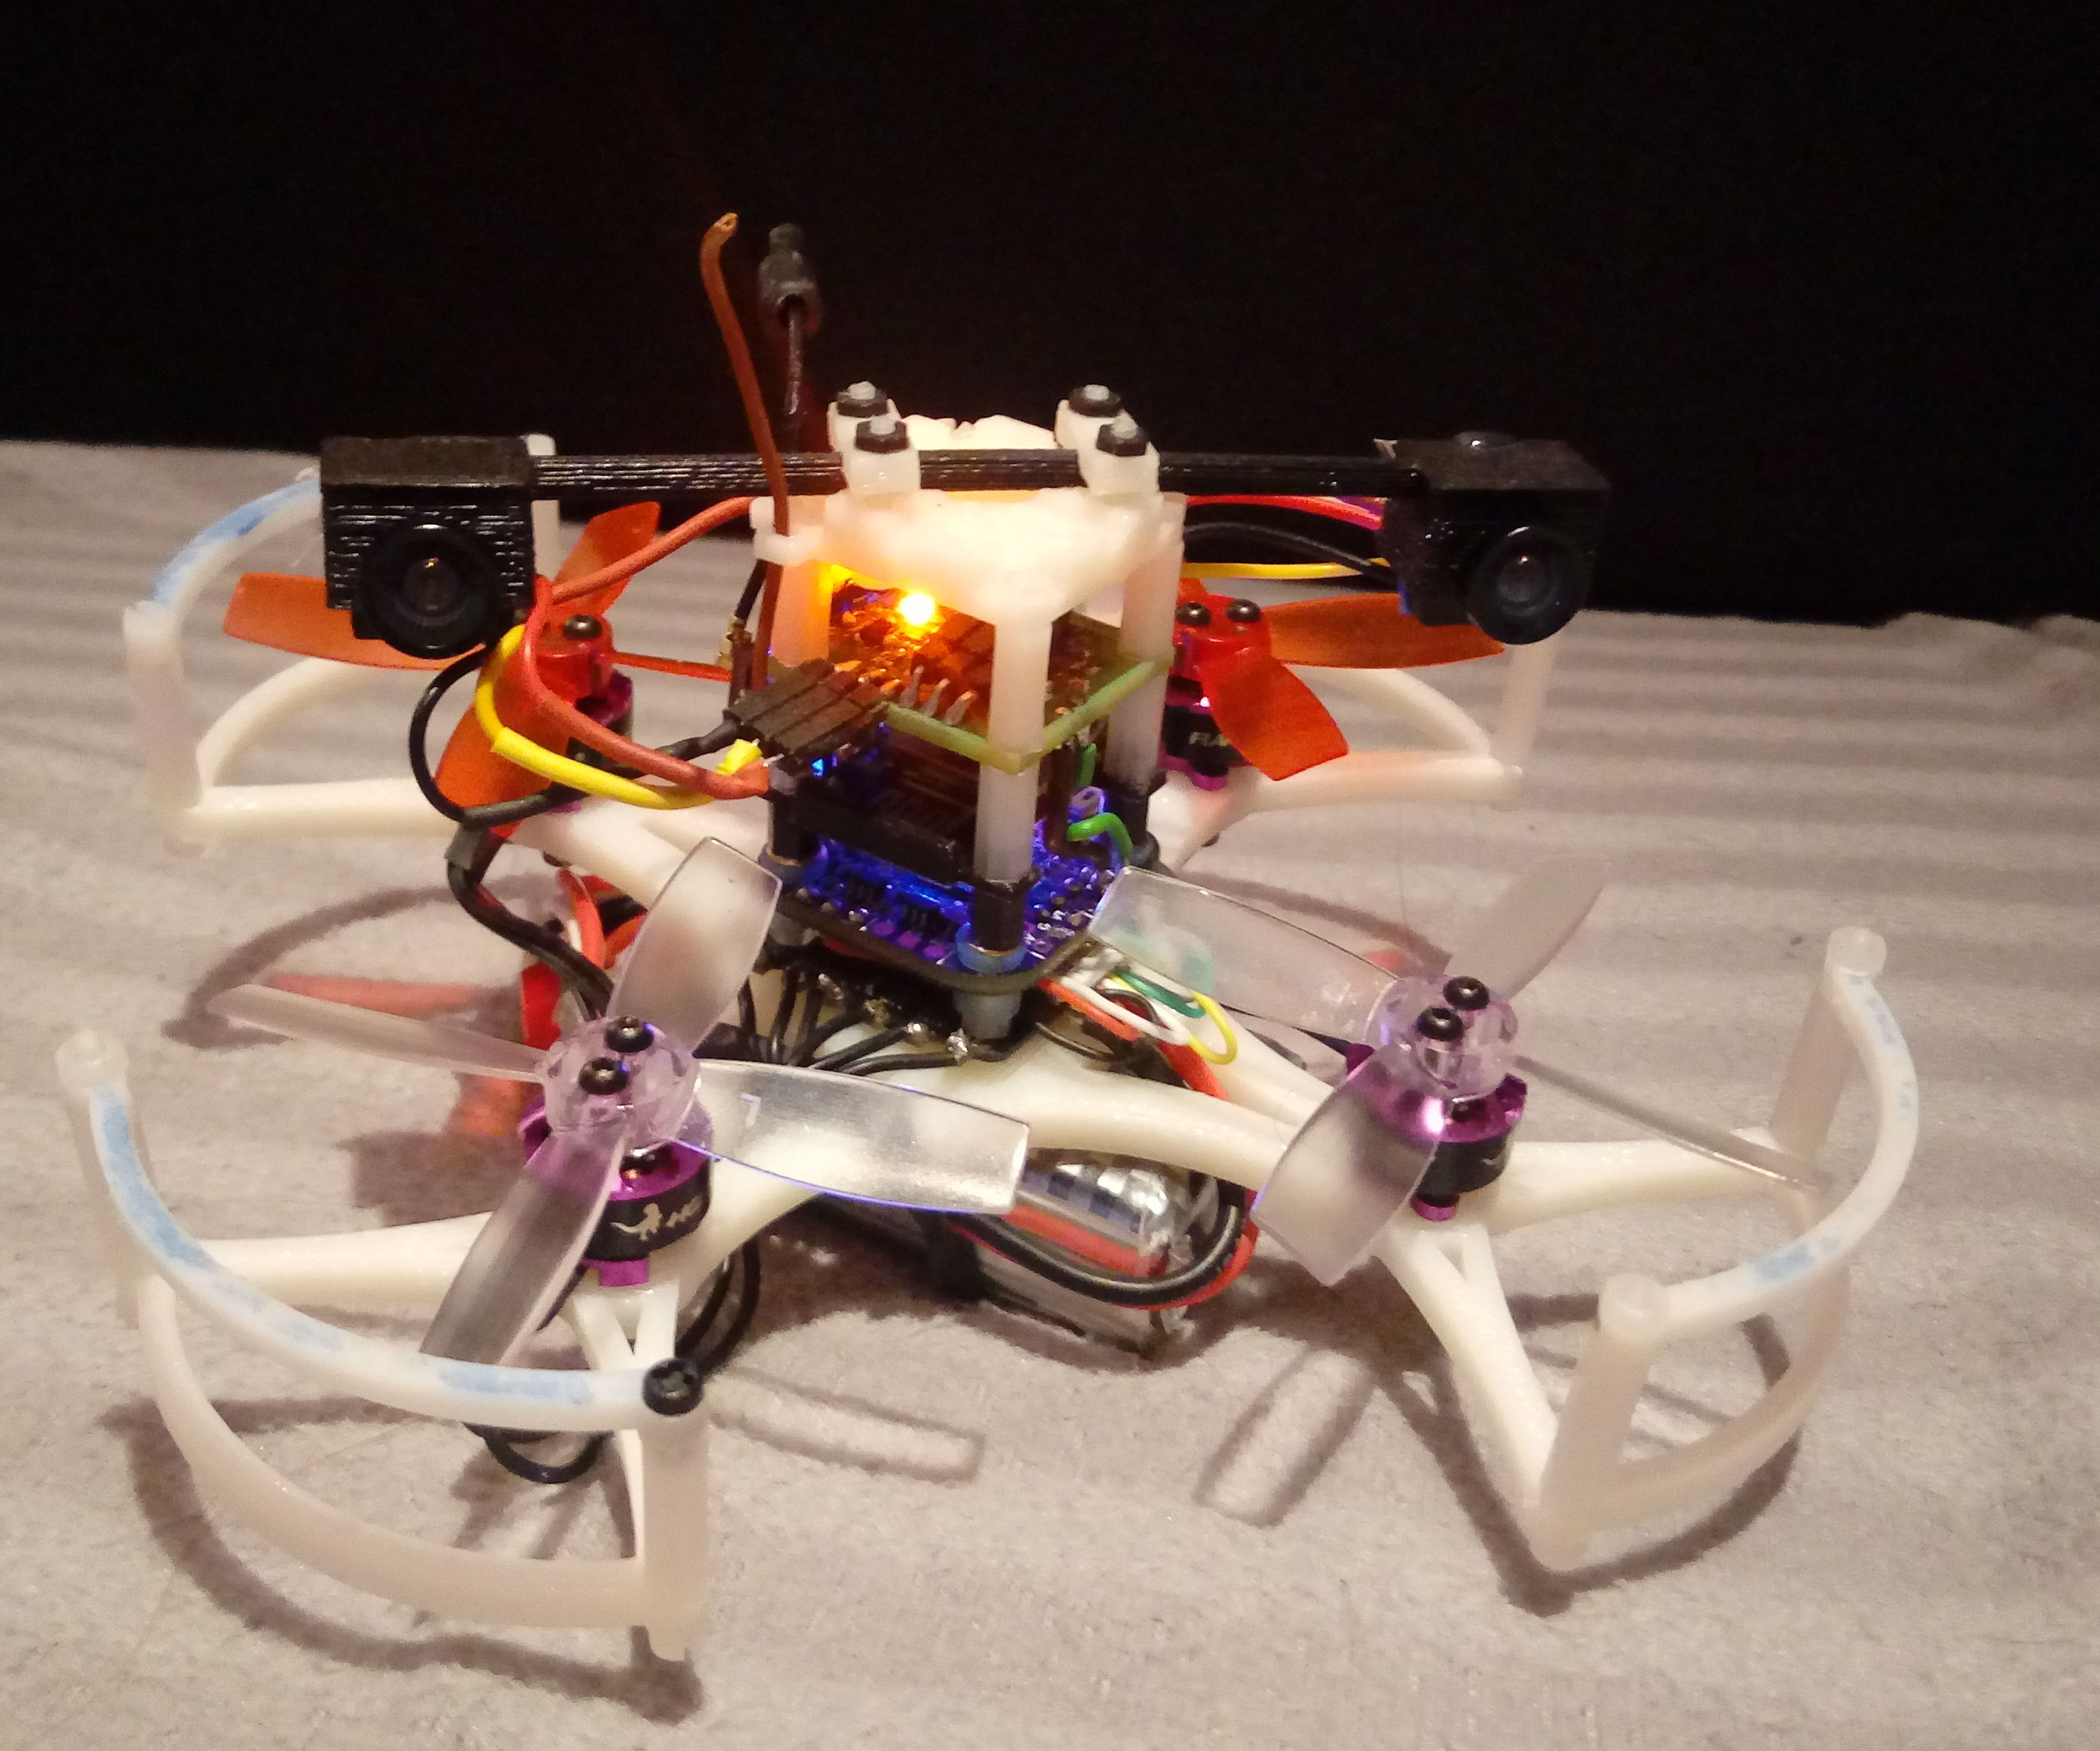 Micro Wifi Controlled 3D Printed 3D FPV Copter